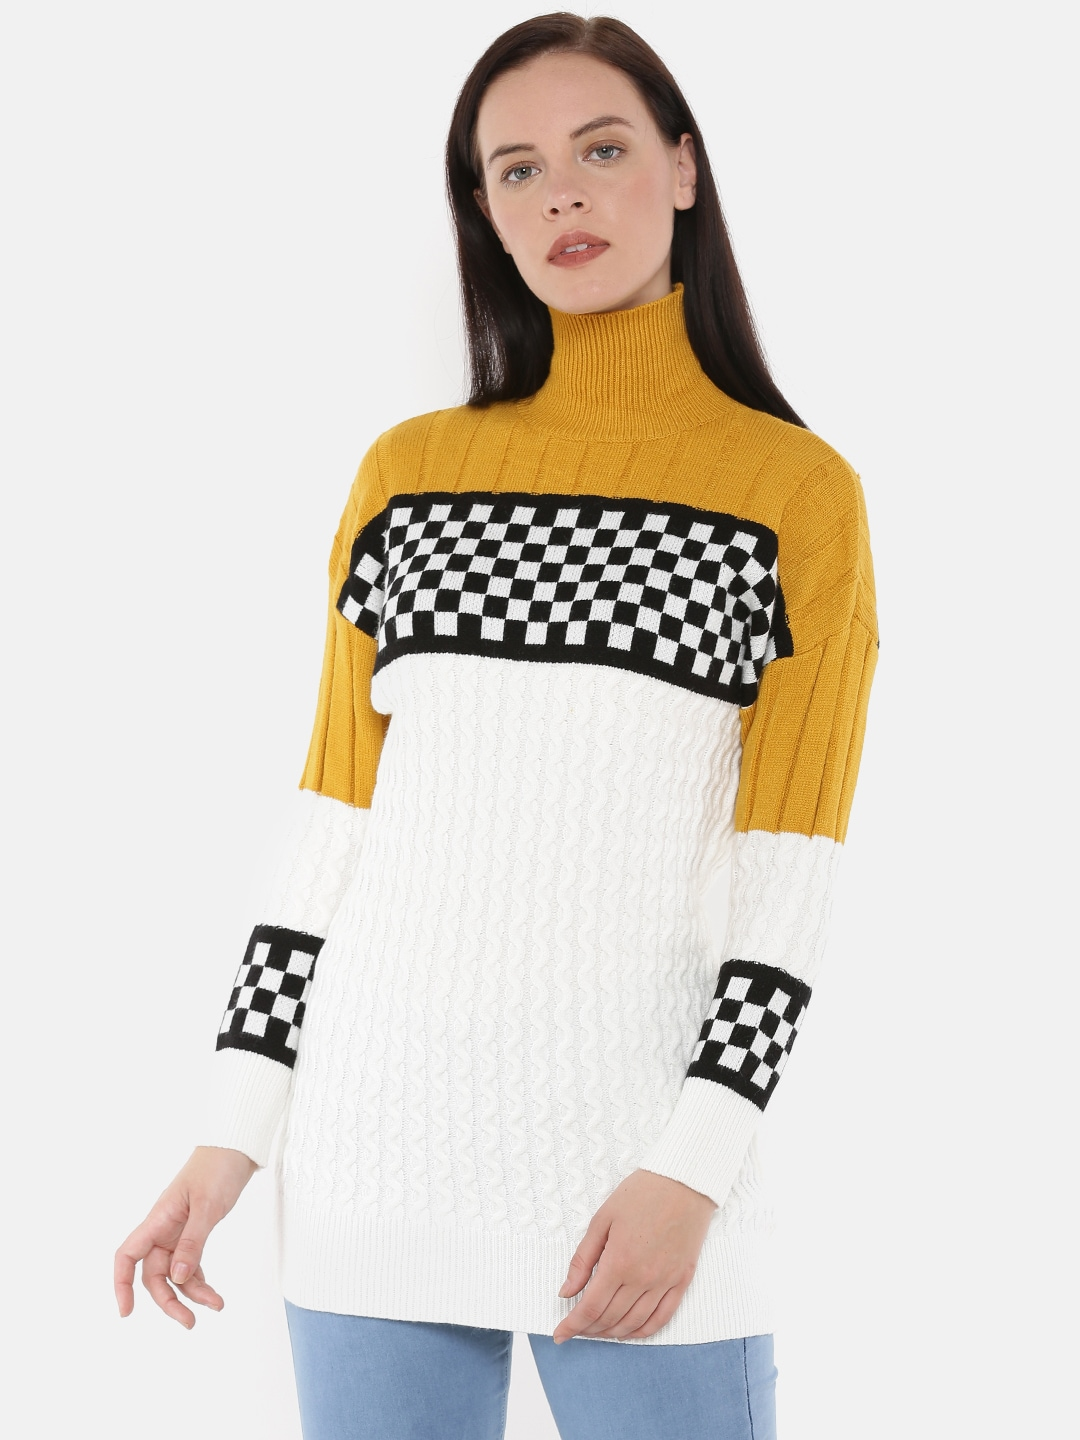 b3d2c1d3c4a Knitted Sweaters - Buy Knitted Sweaters online in India